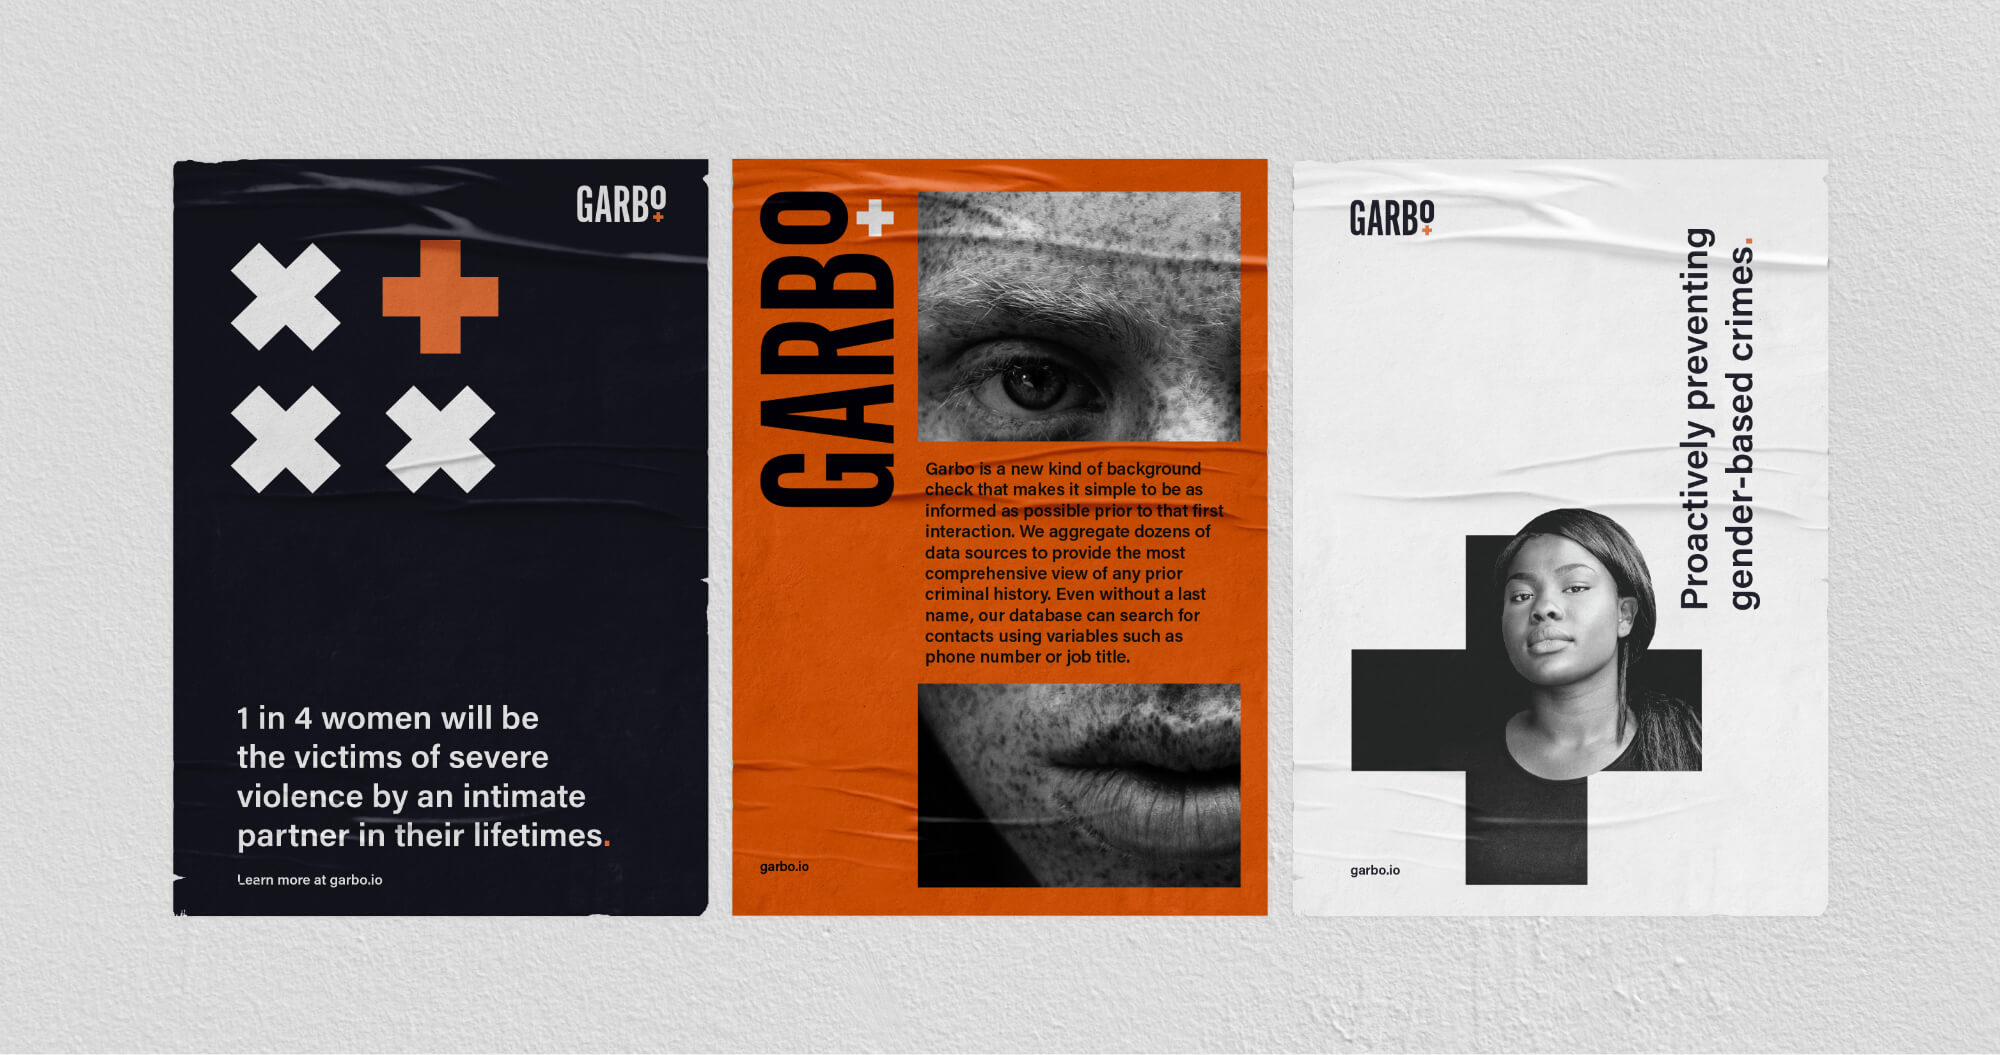 garbo posters designed by matchfire